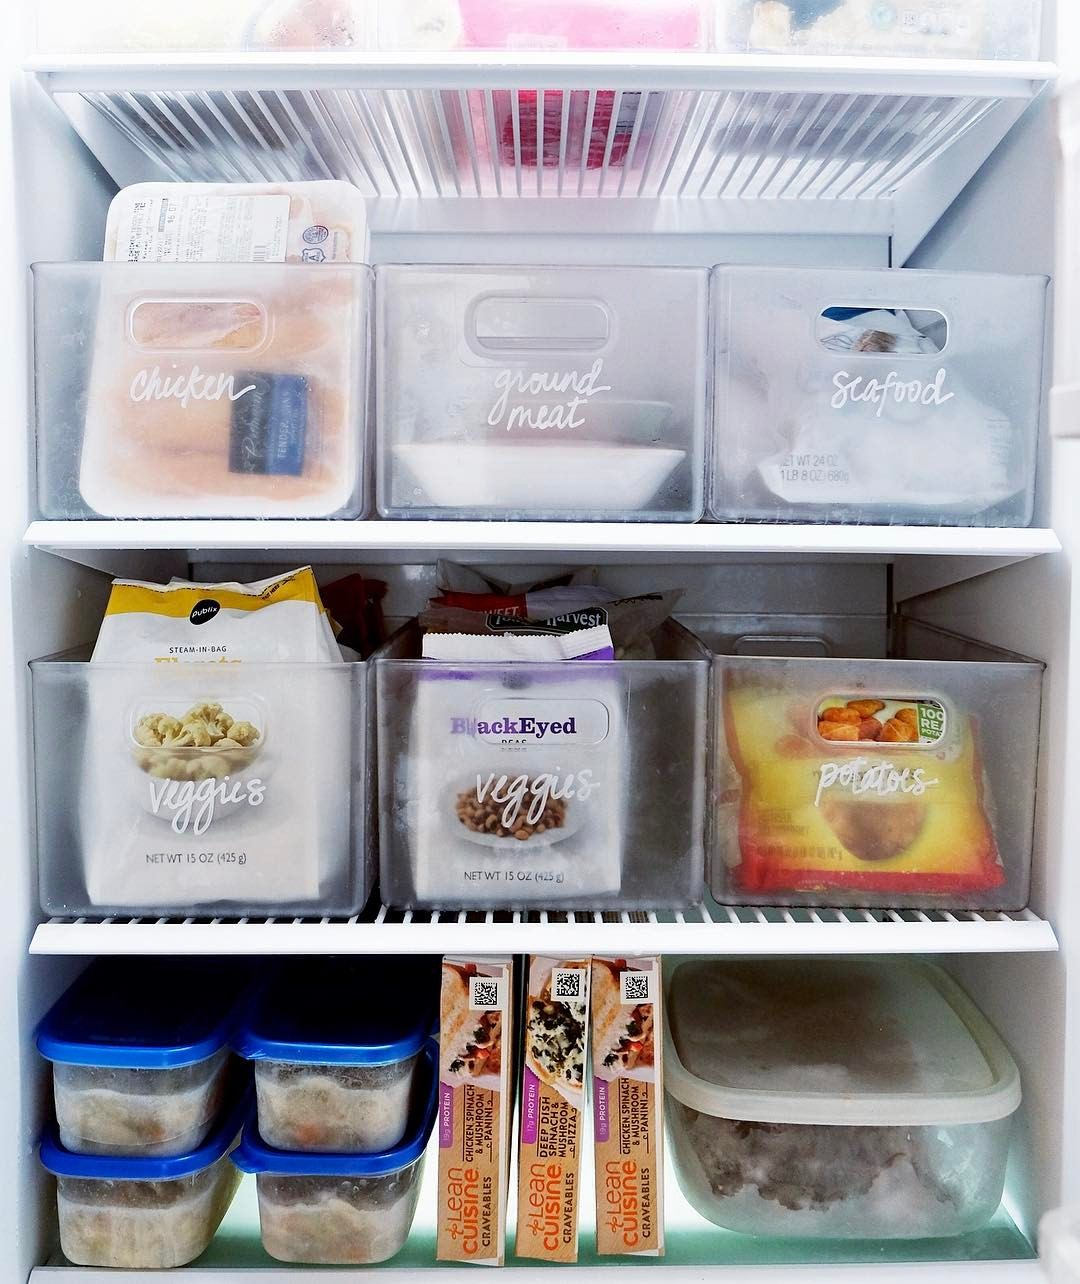 Contenitori Per Organizzare Frigo a perfectly packed freezer ❄️ we created bins for all the